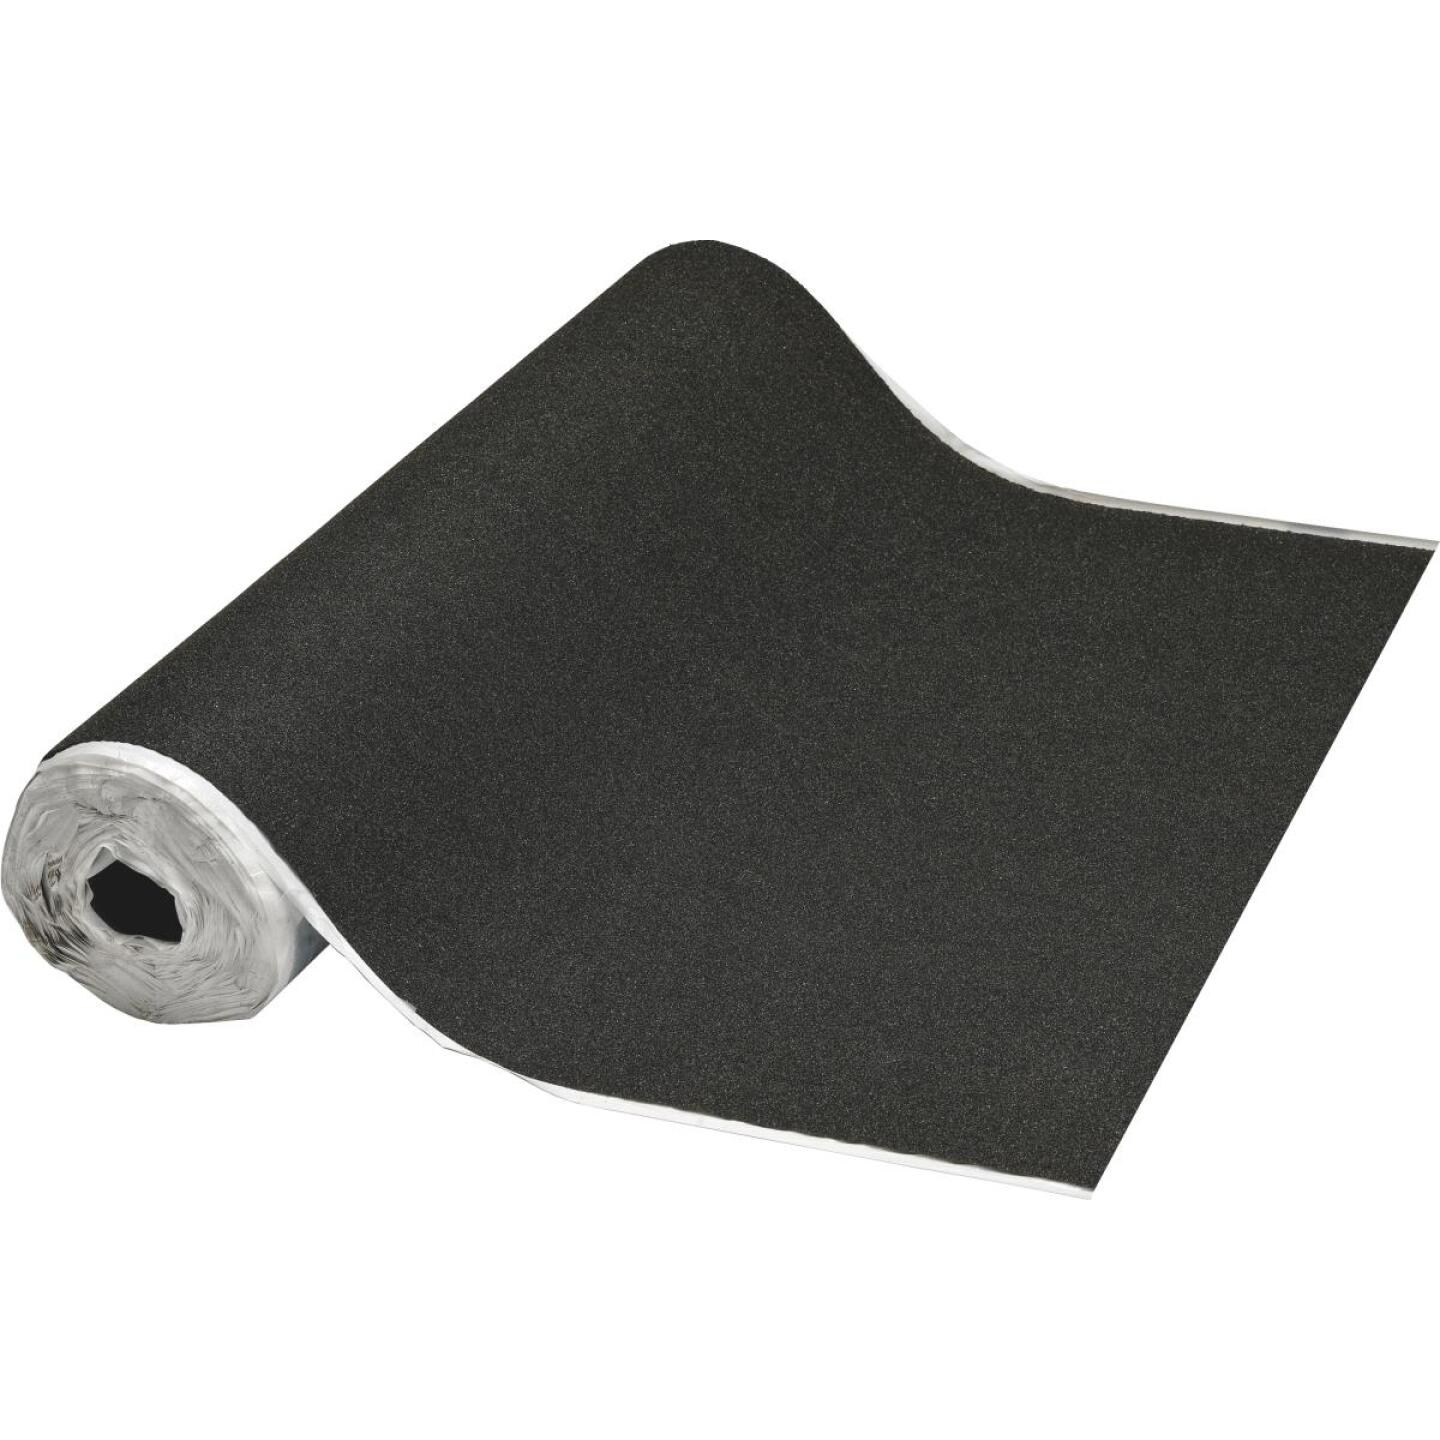 MFM IB-3 IceBuster 36 In. x 65 Ft. Ice & Water Roof Underlayment Image 1